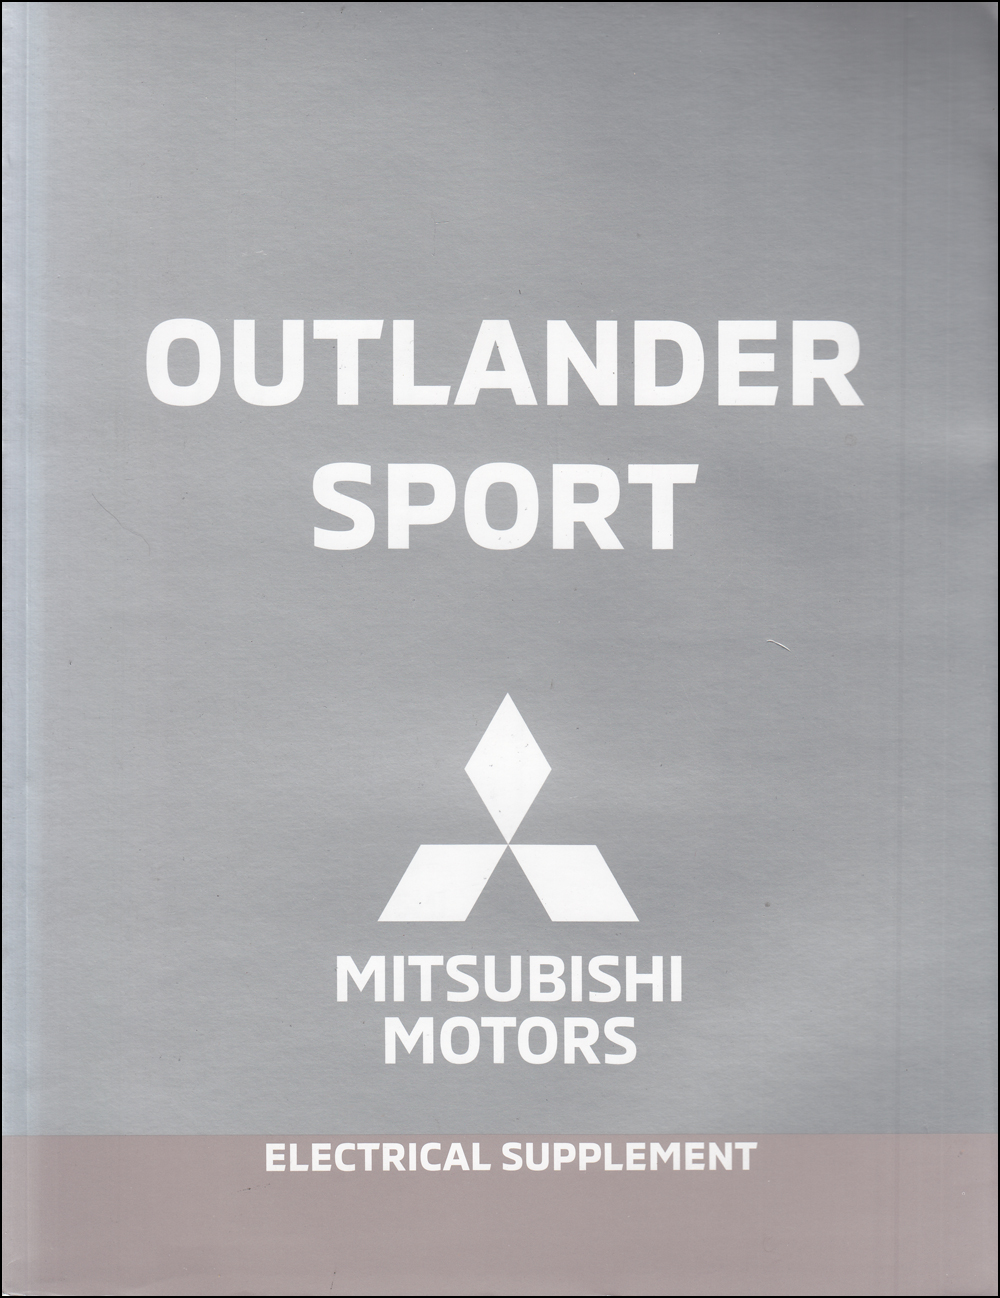 2019 Mitsubishi Outlander Sport Wiring Diagram Manual Original